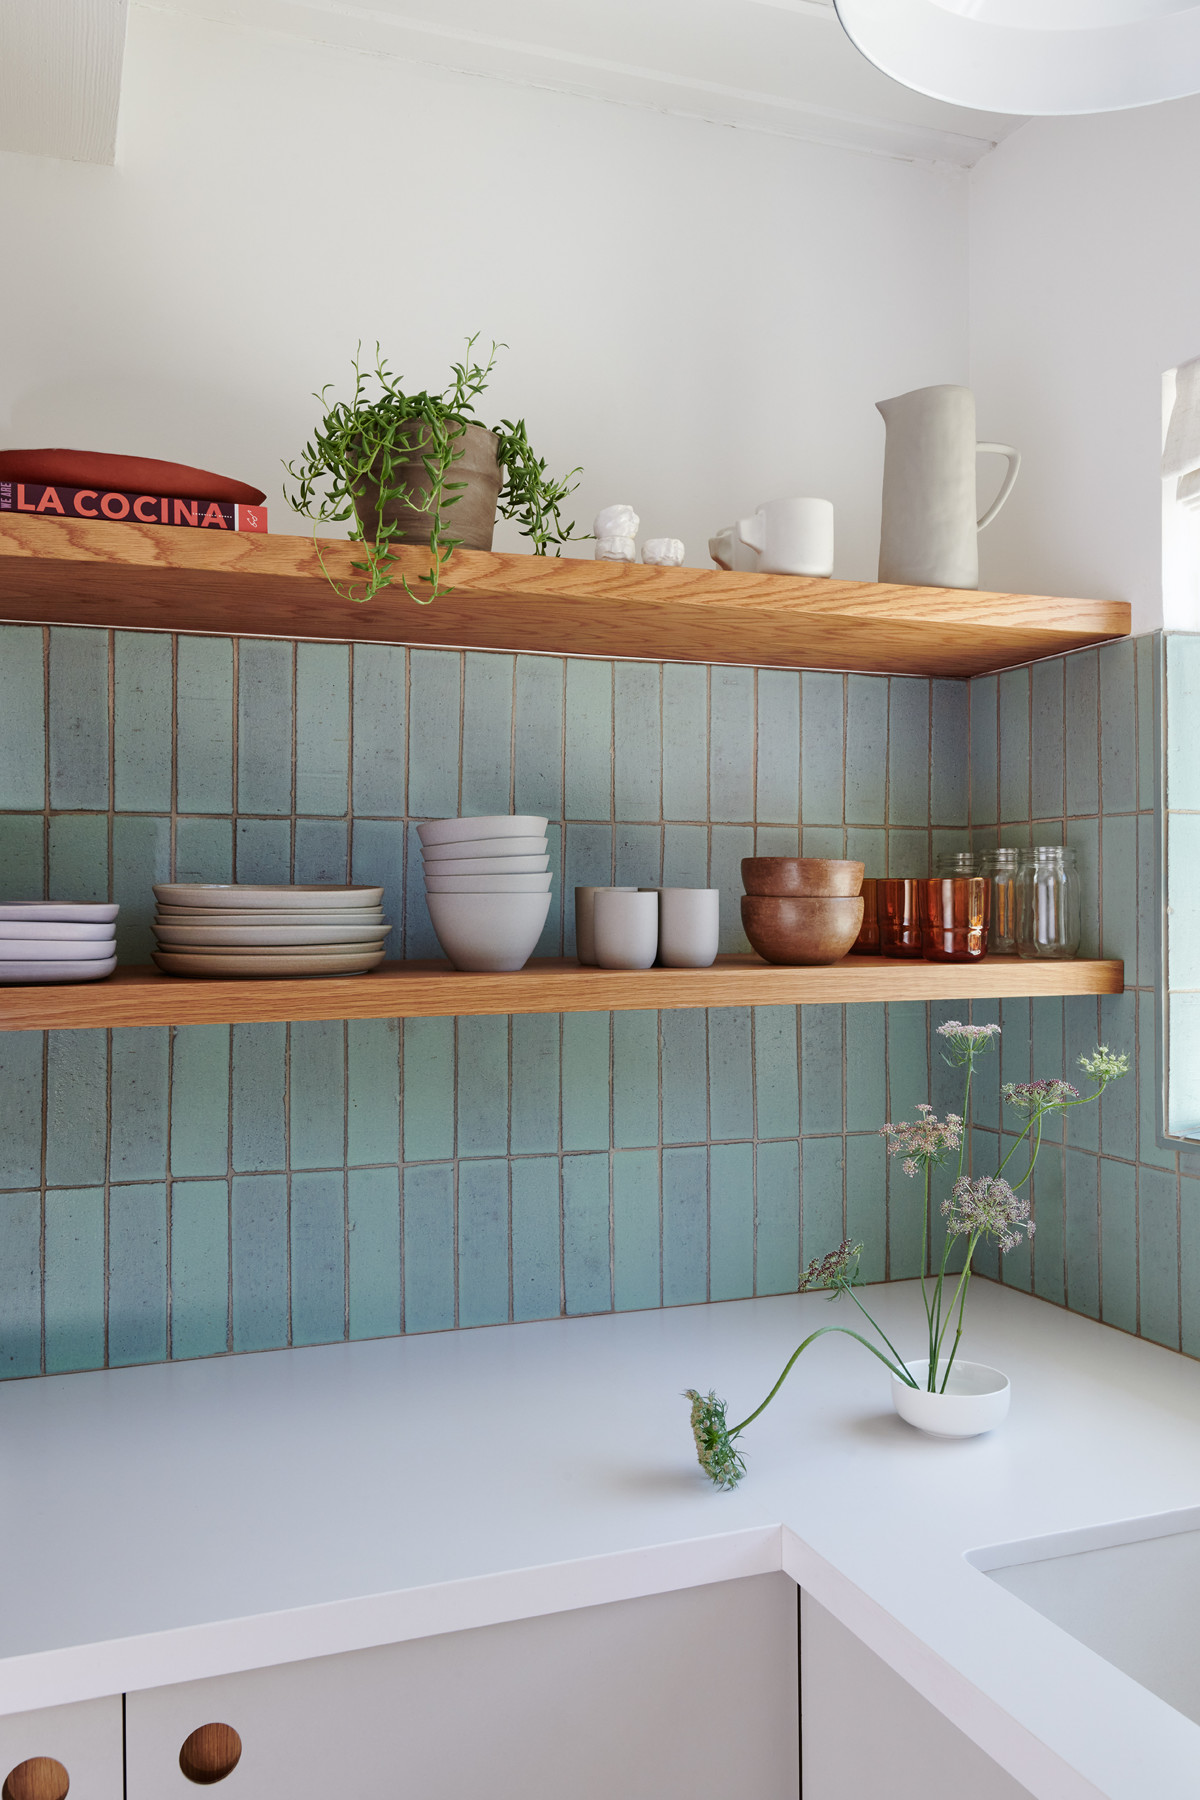 The turquoise-hued backsplash harkens back to her Southwest upbringing while the shelves are filled with items by local artisans and from her visits to Mexico.Fireclay Tile |Earthtones Studio| Mexico-Sourced Bowls And Dishes|Our Place Glasses | La Cocina Cookbook|Blk Girls Greenhouse Plant|Pink Paloma Arrangement.